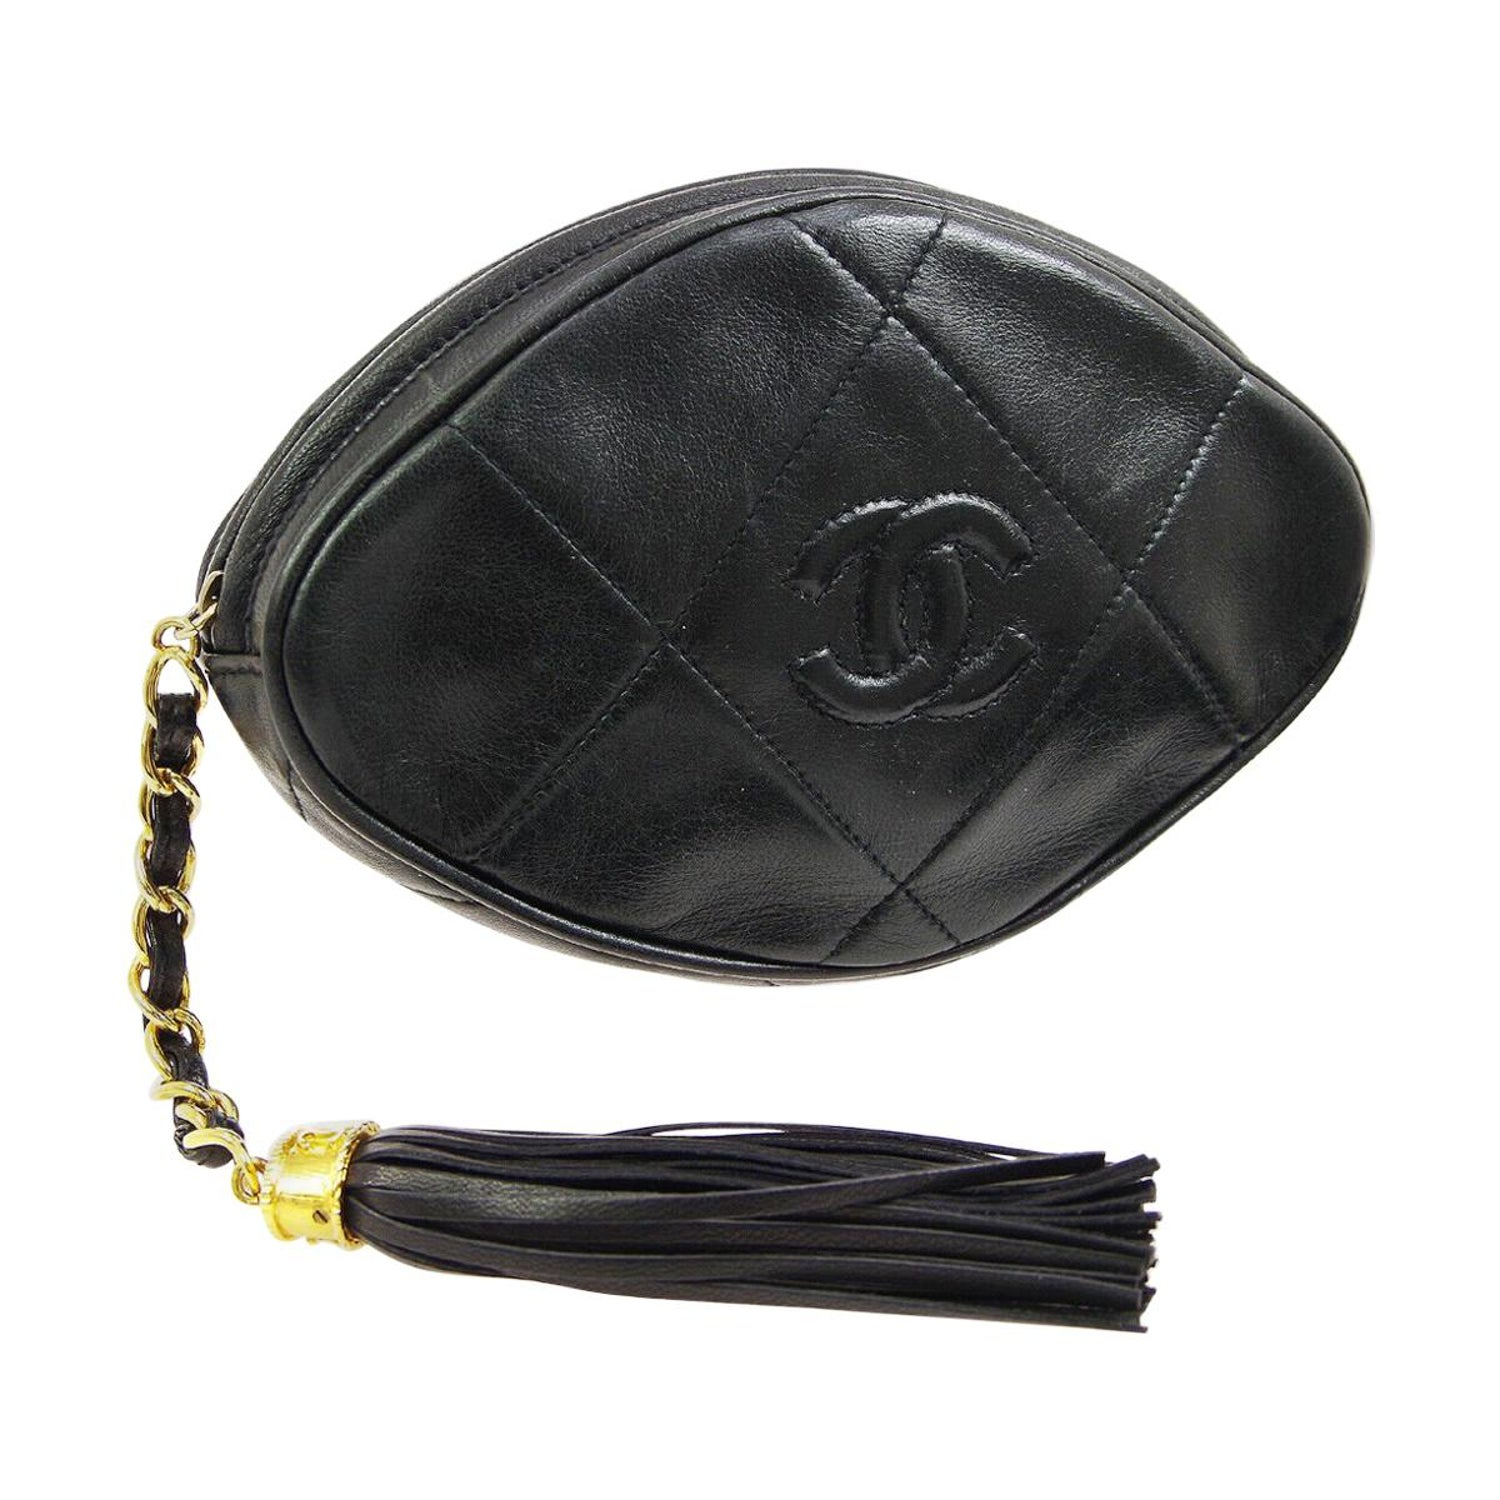 cc431b72ac55aa Chanel Black Leather Tassel Small Mini Evening Clutch Bag For Sale at  1stdibs